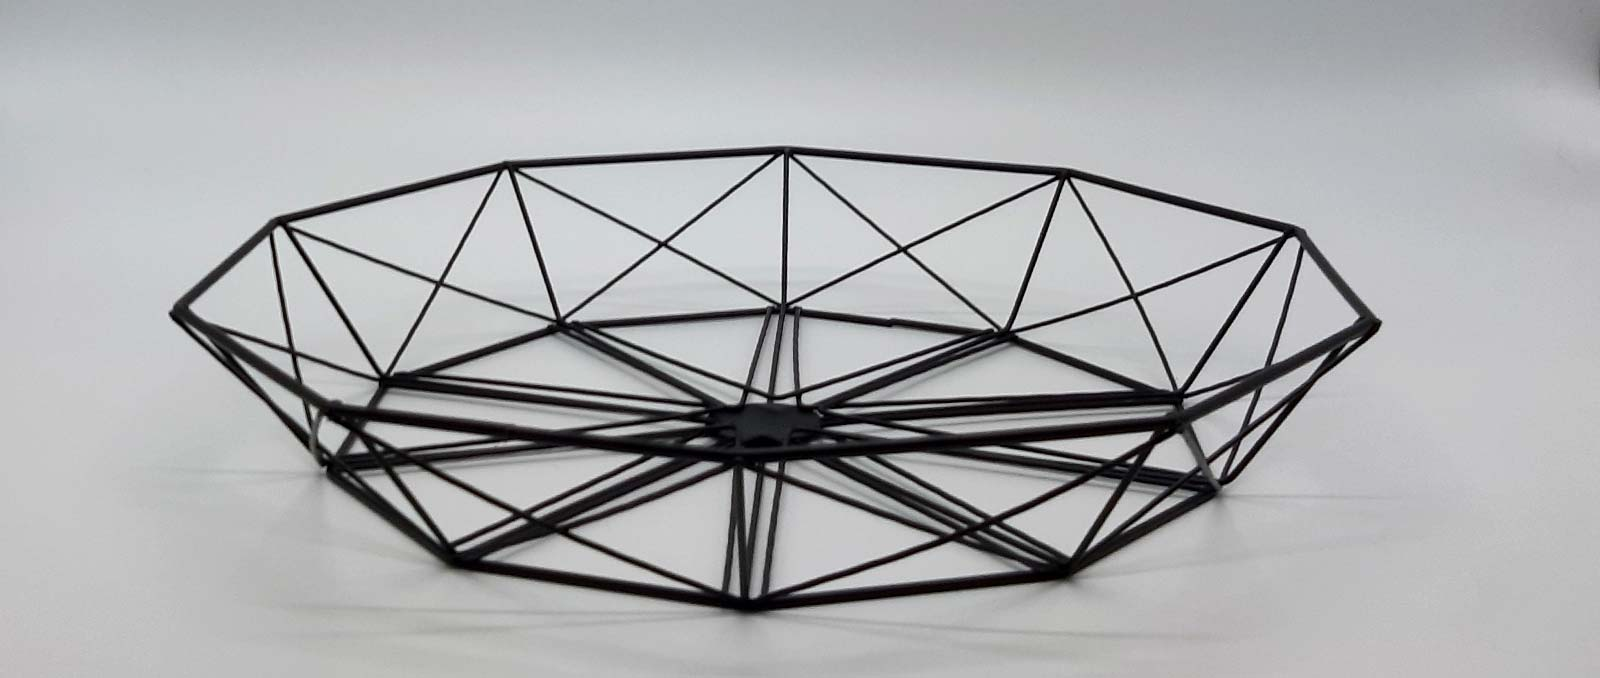 platter-black-wire-geometry